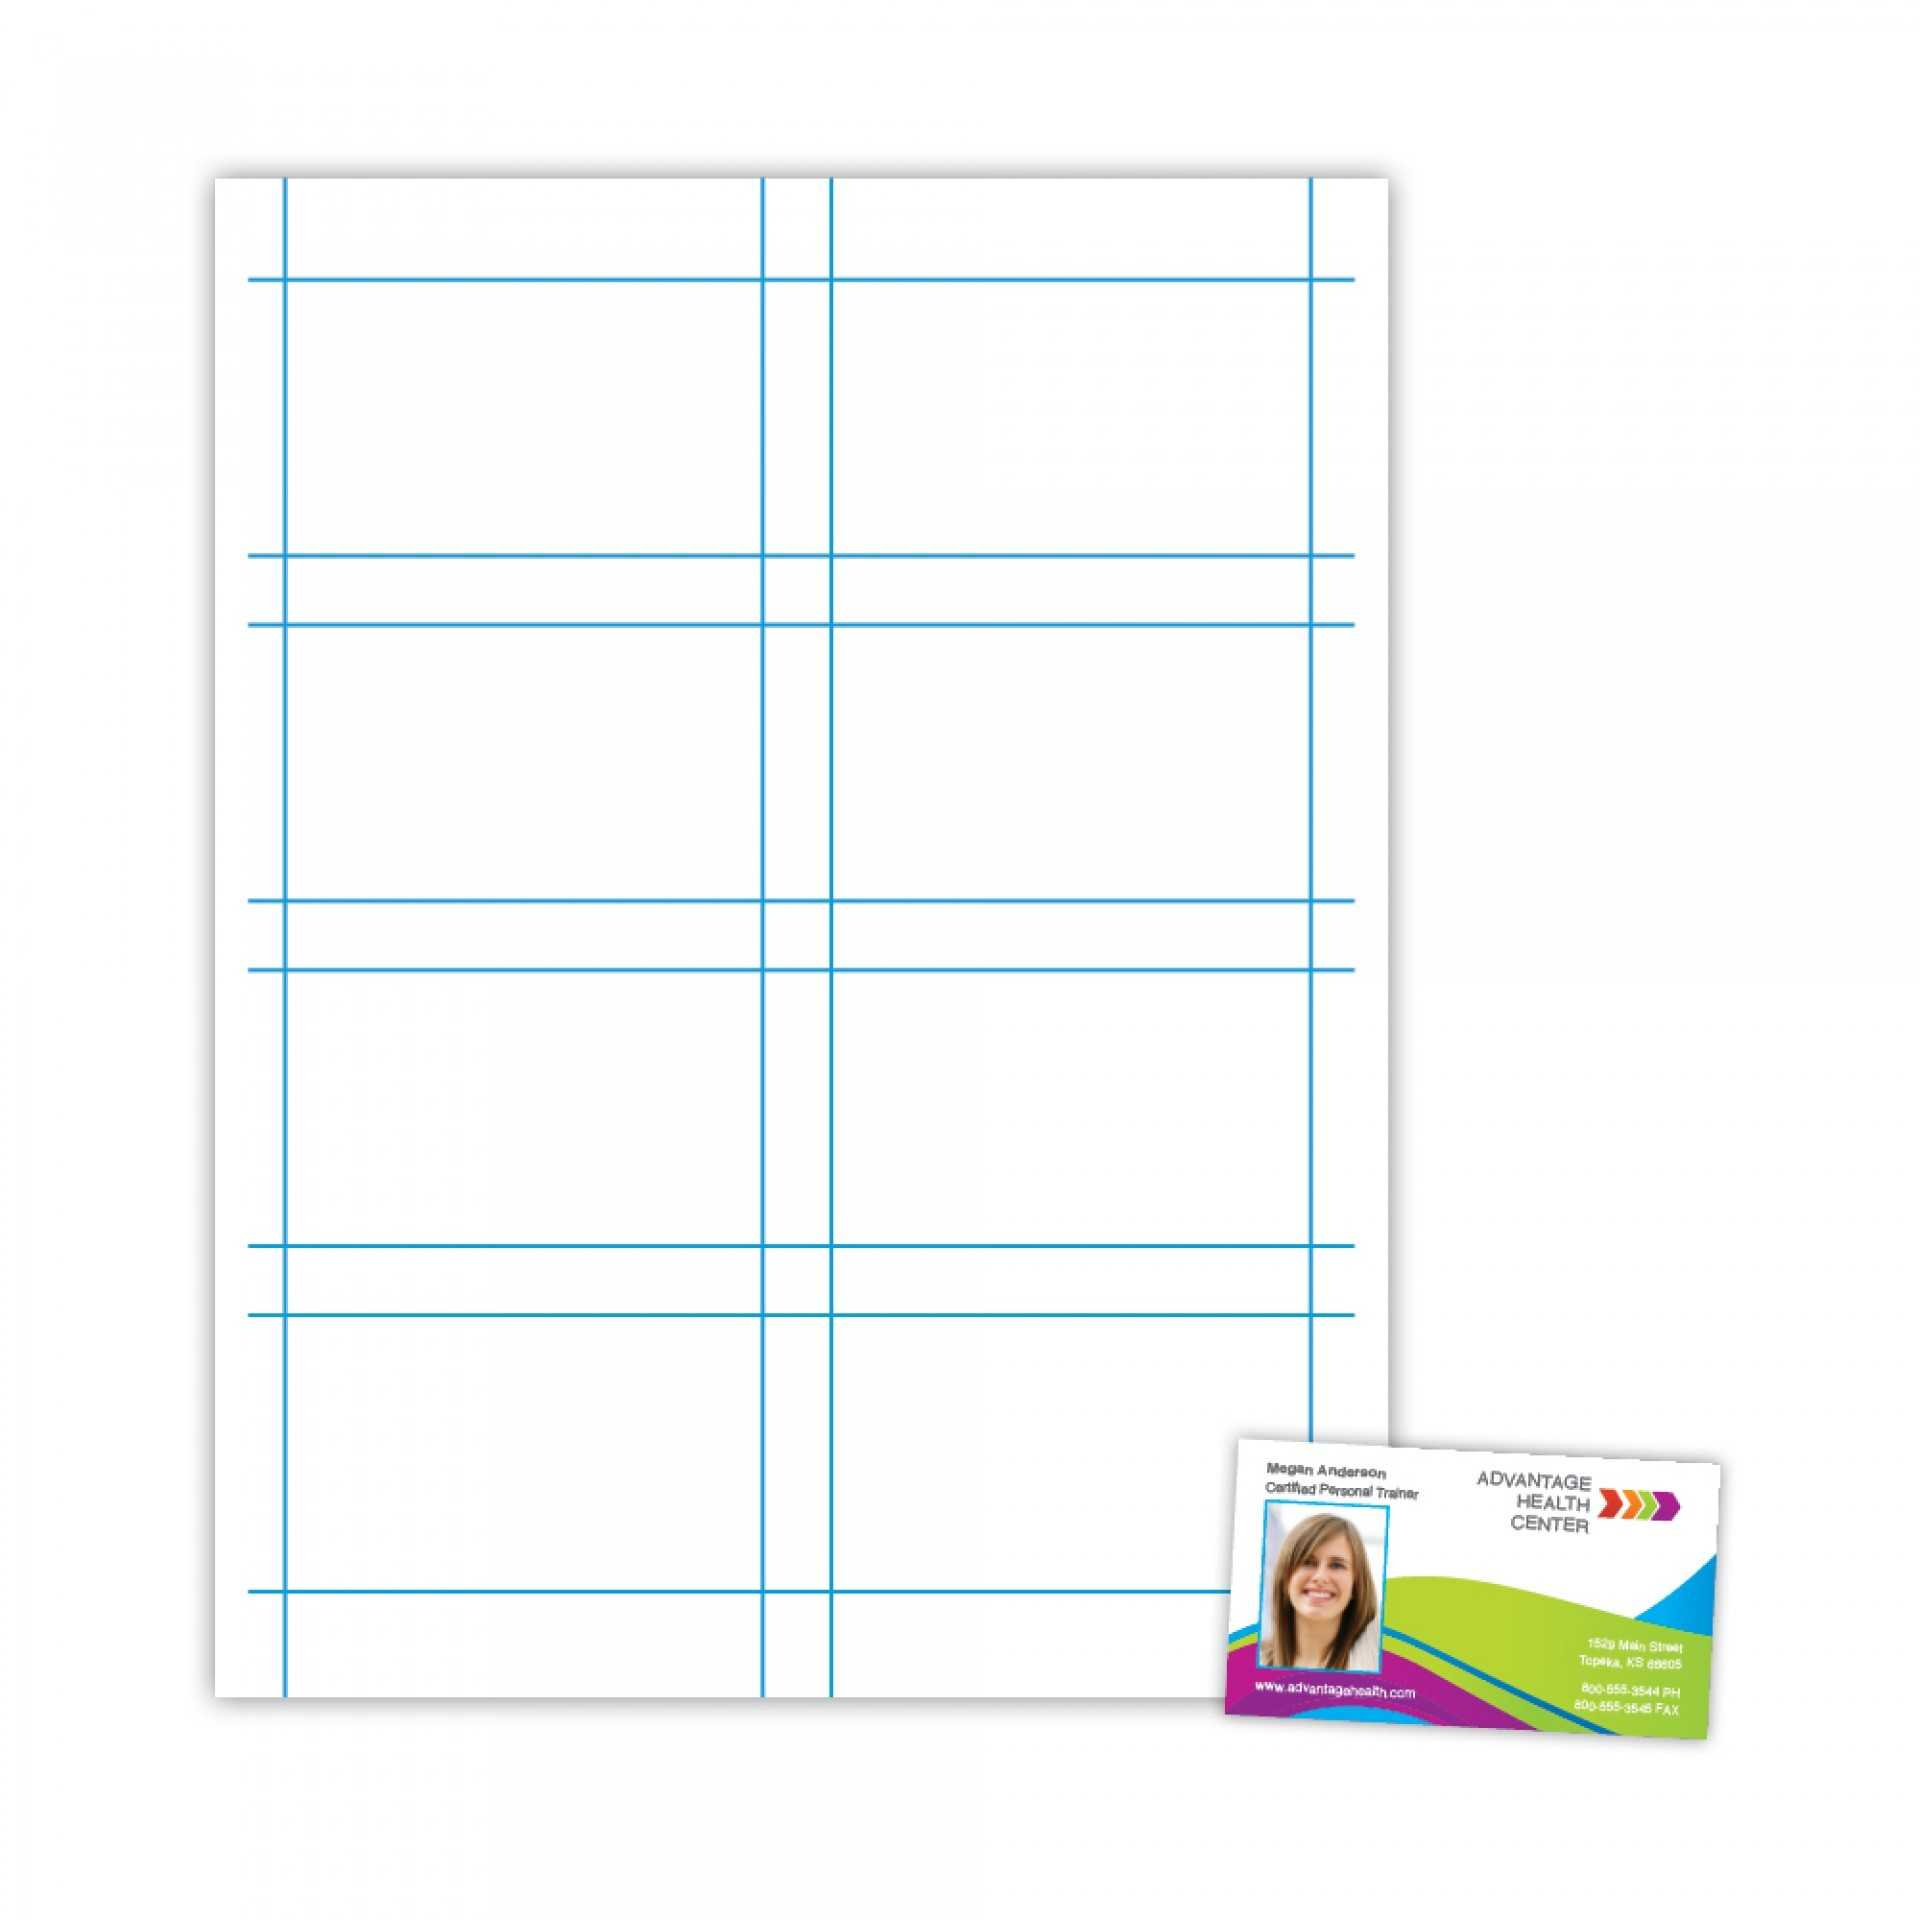 003 Blank Business Card Template Free Ideas Fantastic Inside Blank Business Card Template Photoshop